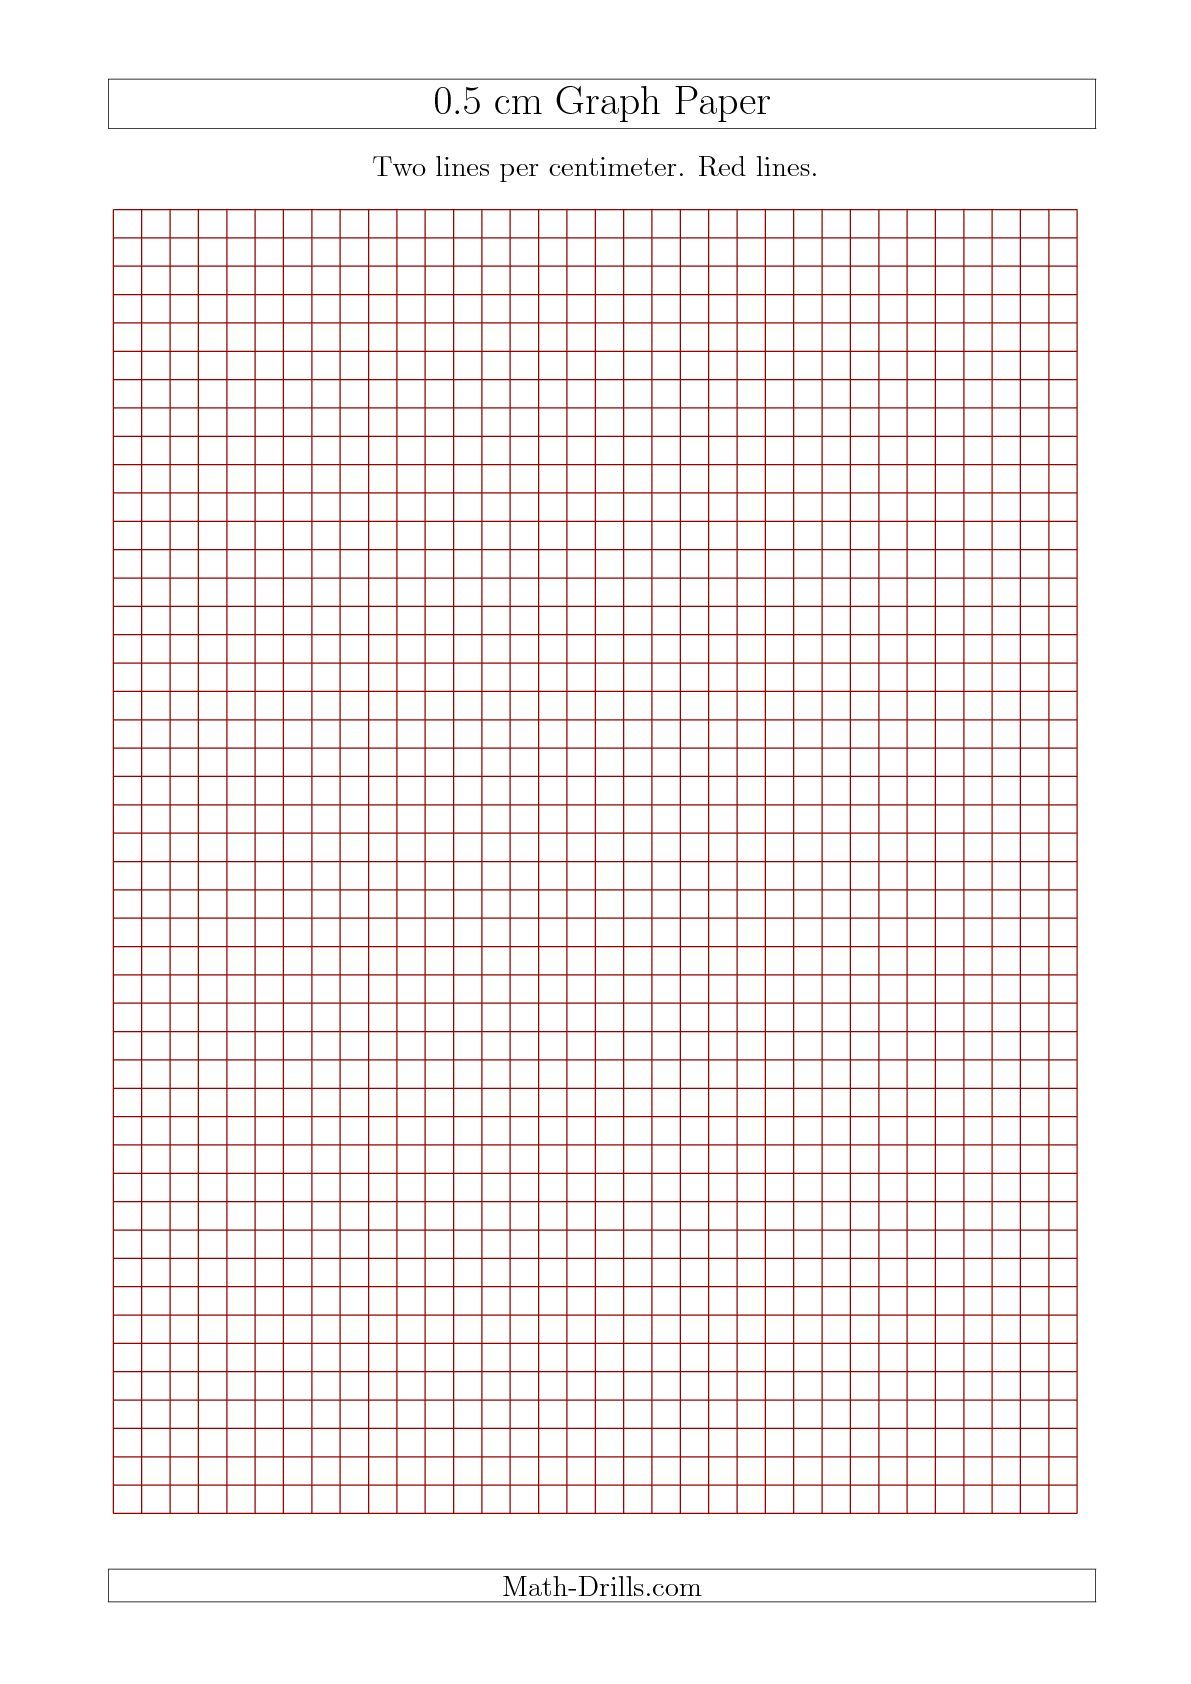 New 09 17 0 5 Cm Graph Paper With Red Lines A4 Size